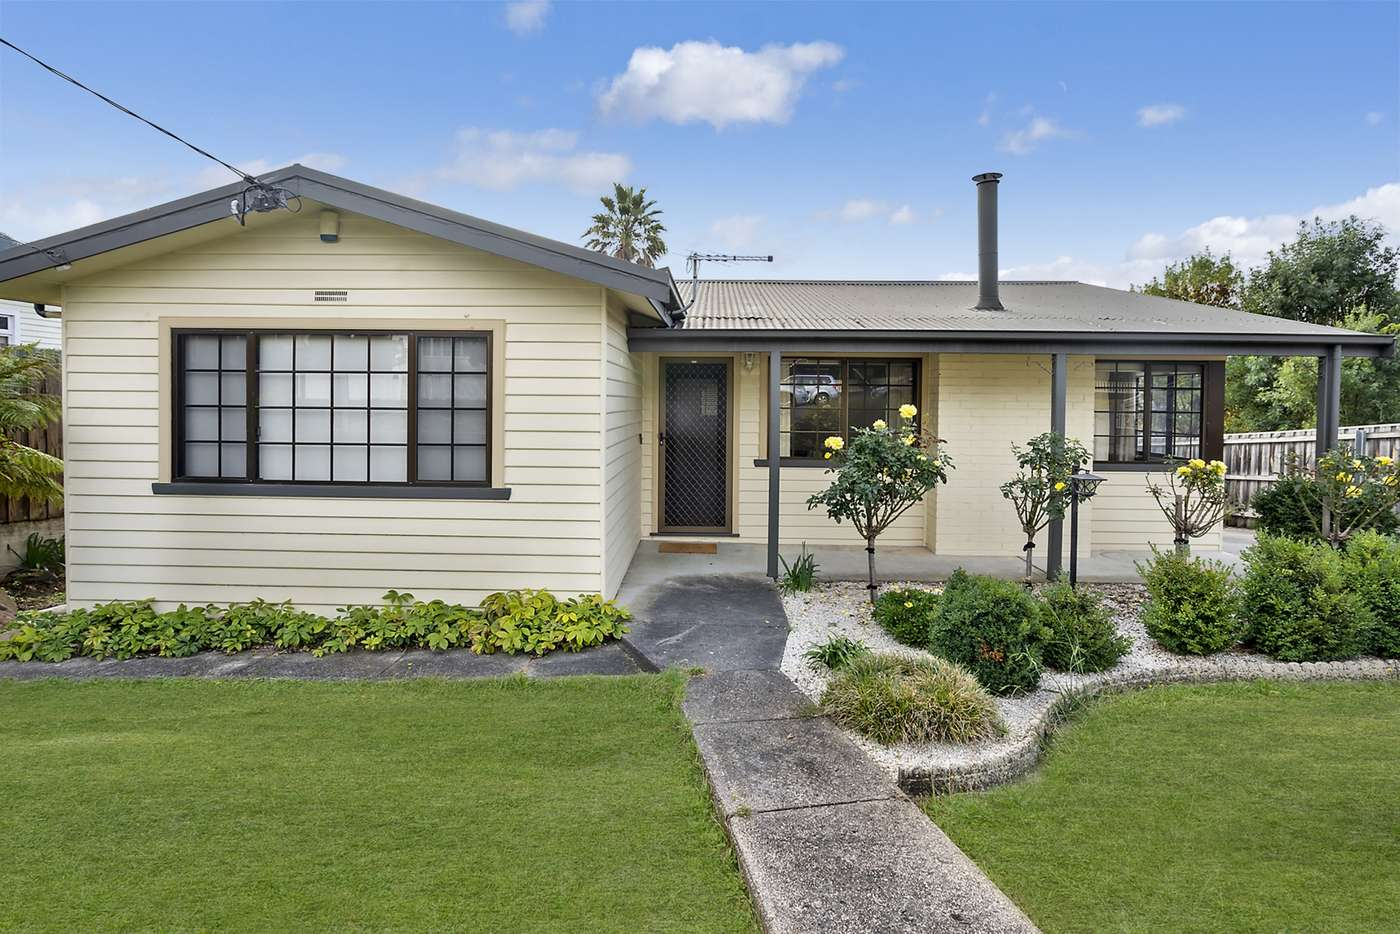 Main view of Homely house listing, 60 Thistle Street, South Launceston TAS 7249